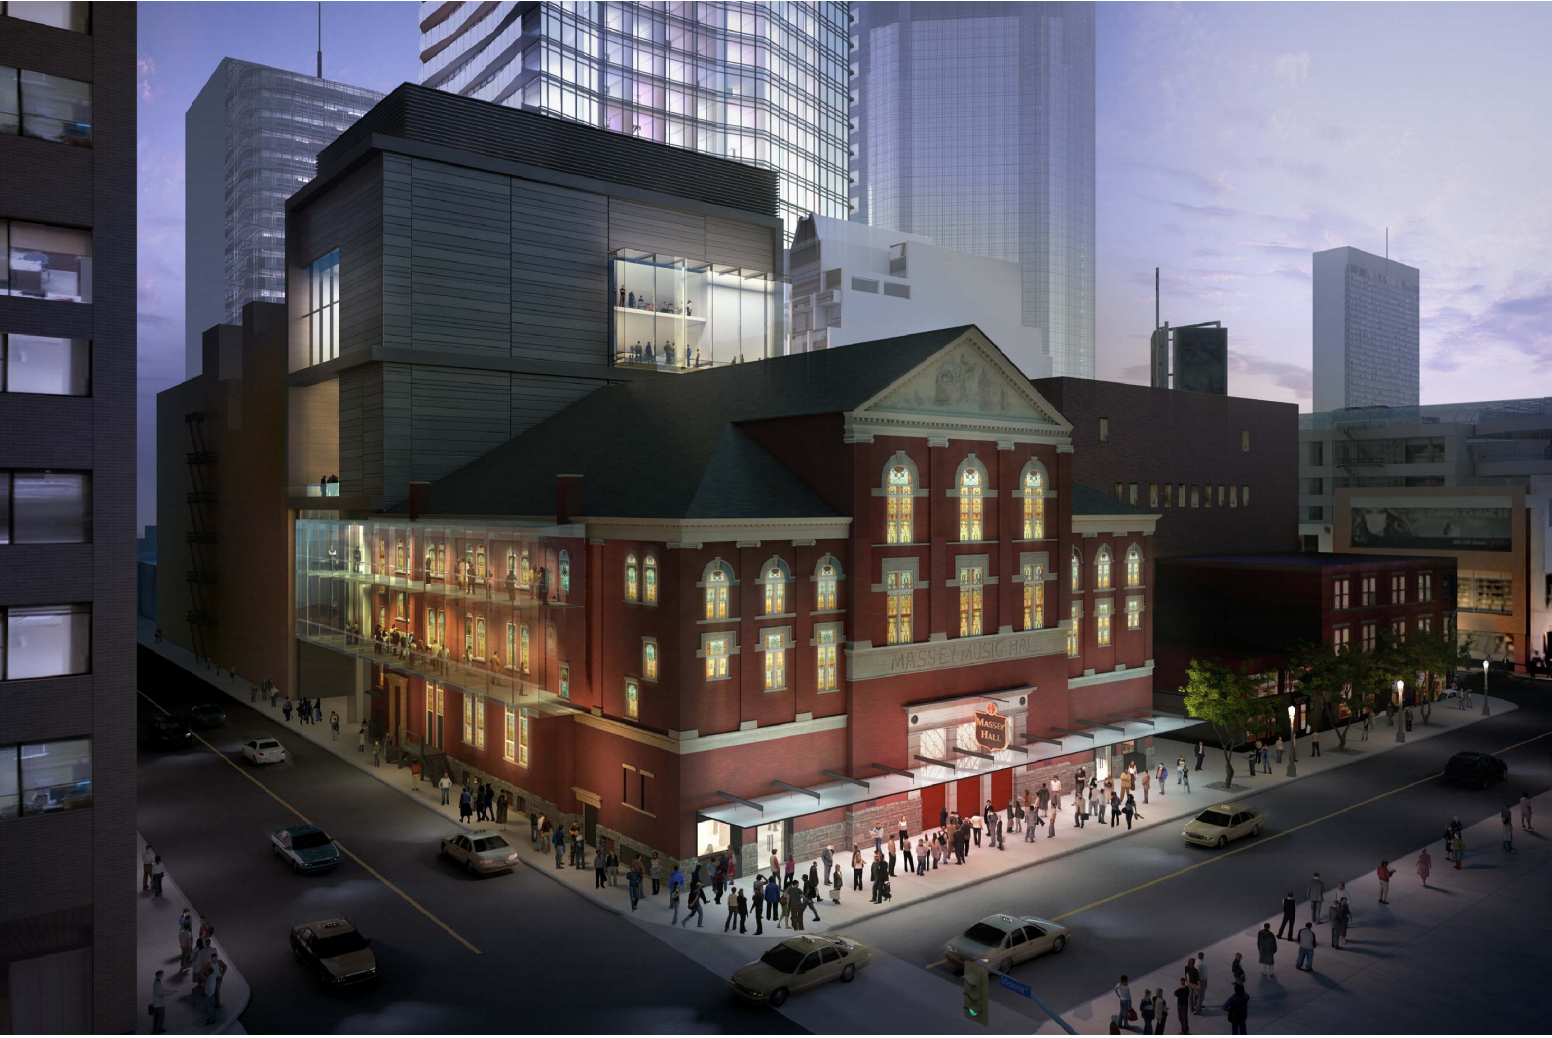 A rendering of the renovated Massey Hall, image by KPMB Architects via submission to the City of Toronto